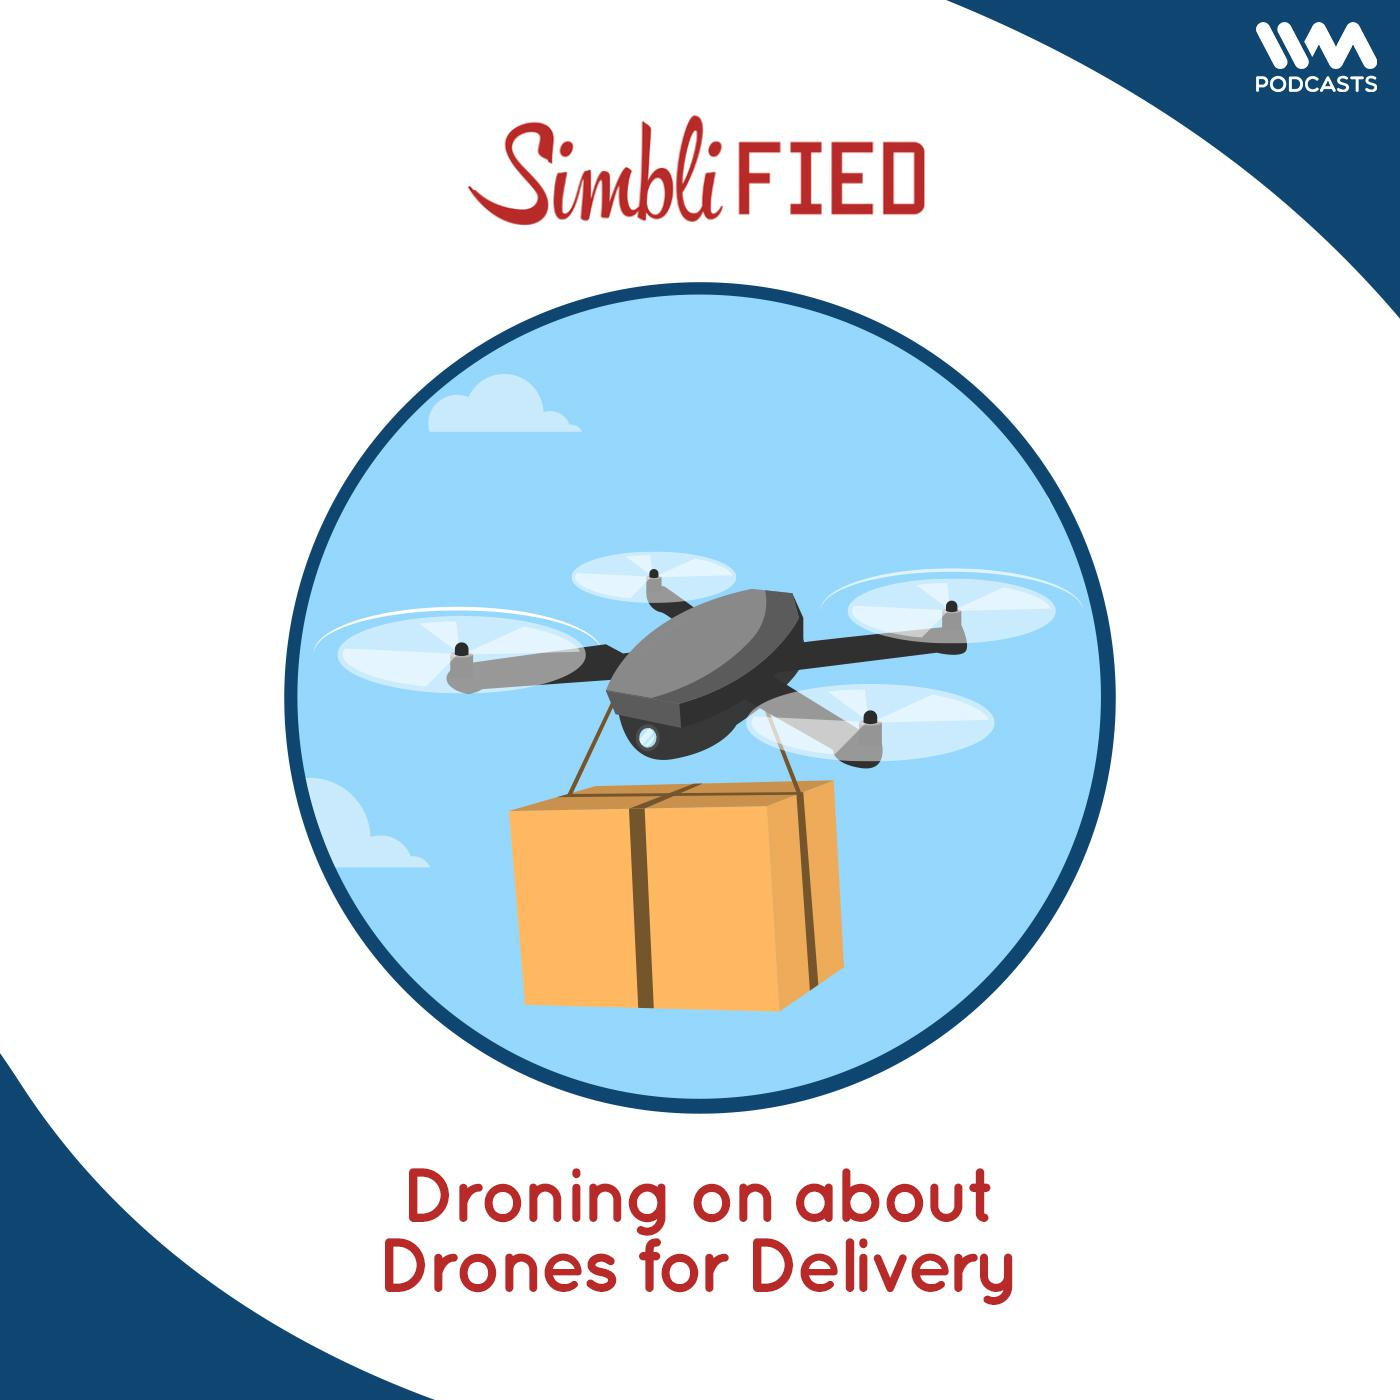 Droning on about Drones for Delivery